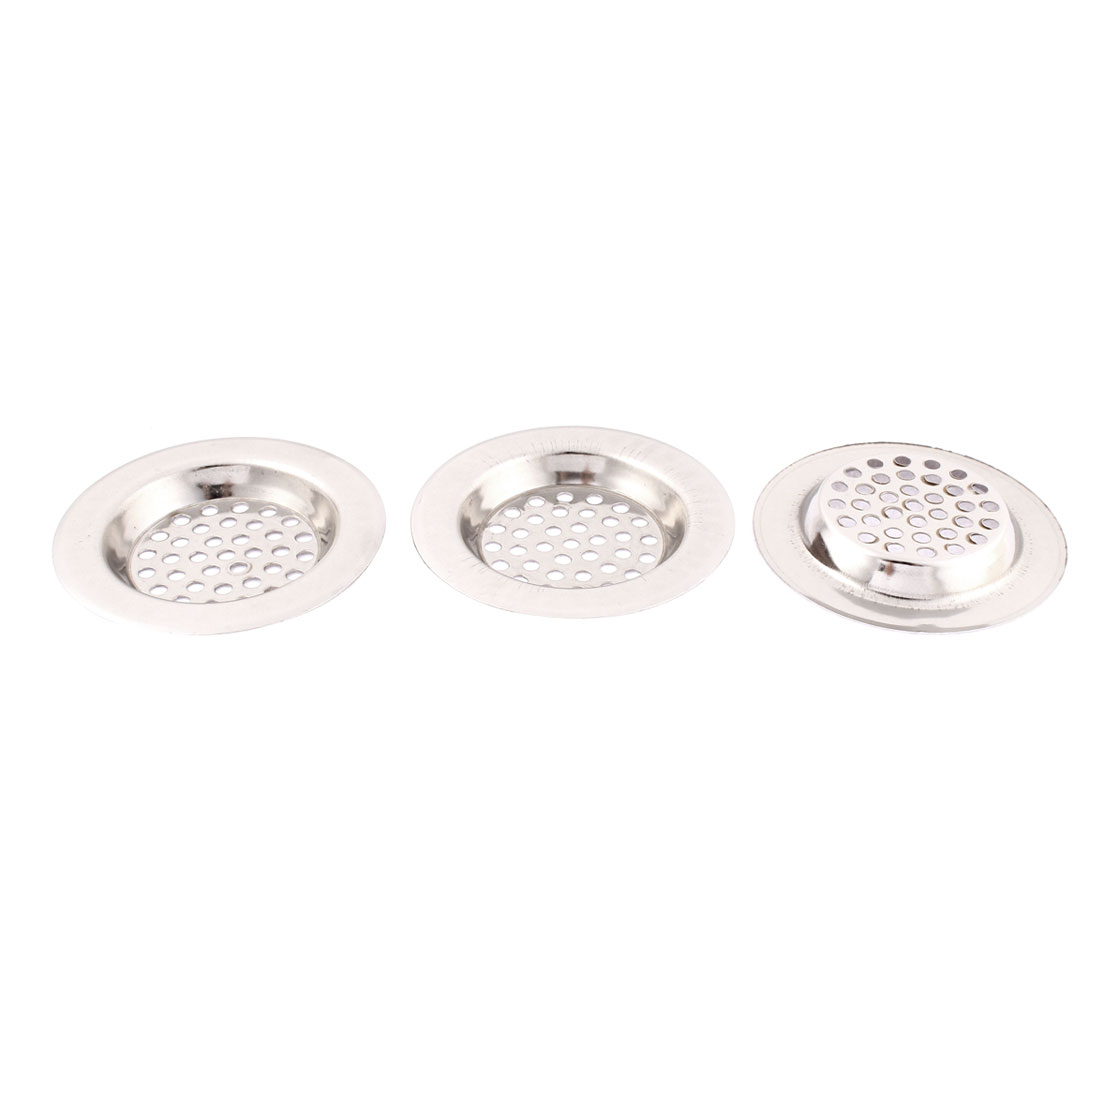 Kitchen Stainless Steel Sink Strainer Drainer Filter Stopper 3 Inch Dia 3 Pcs